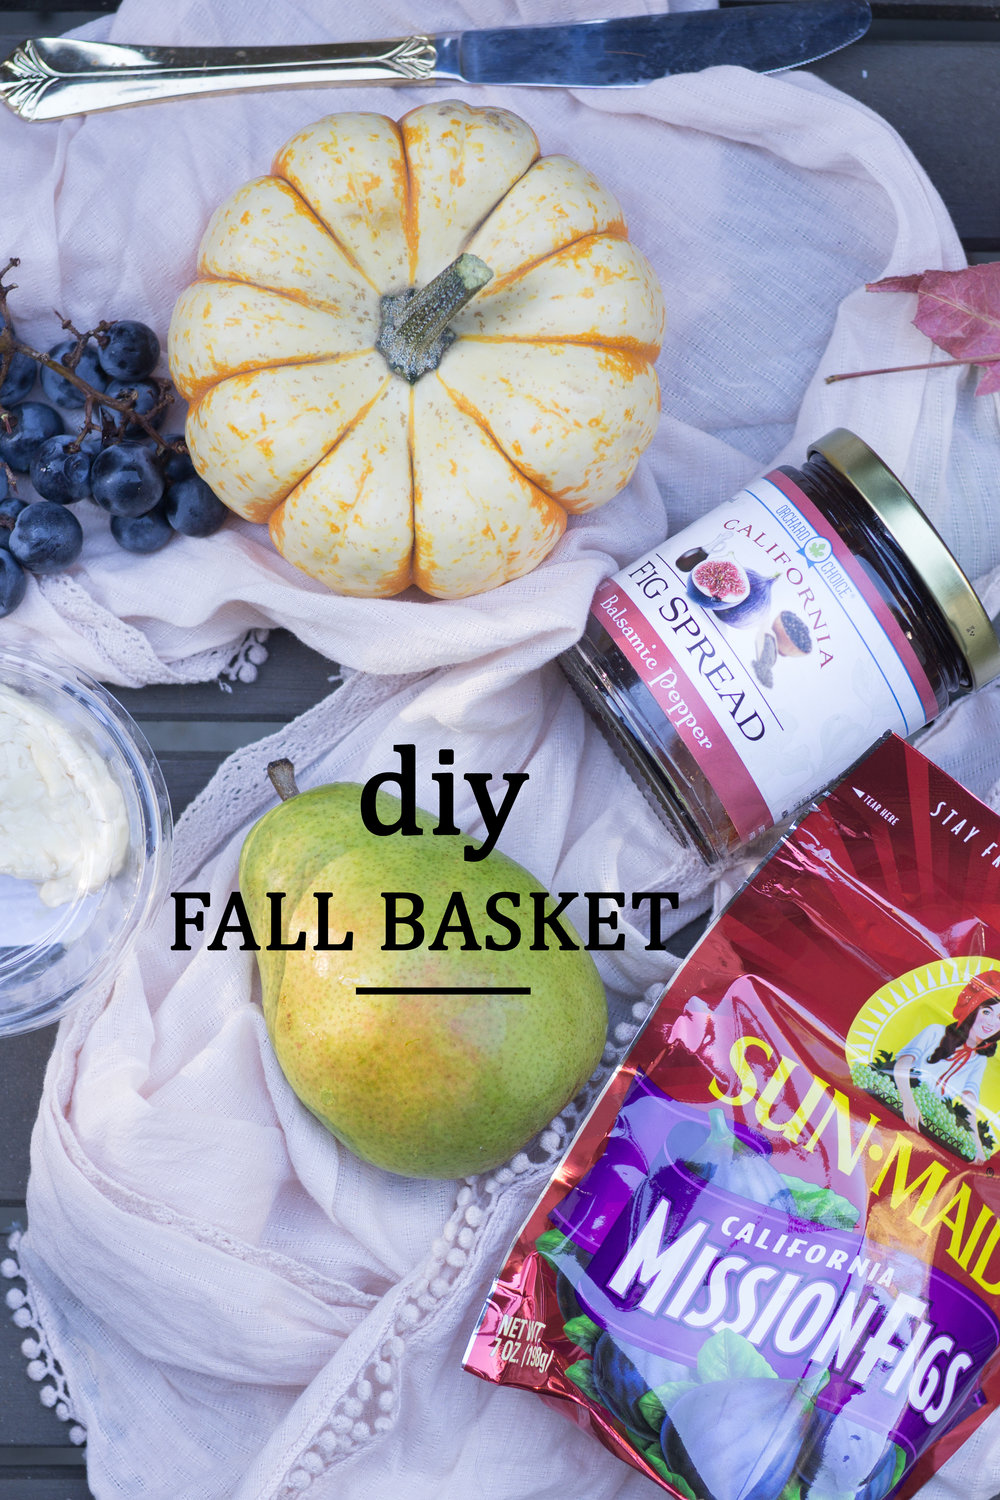 diy-fall-basket